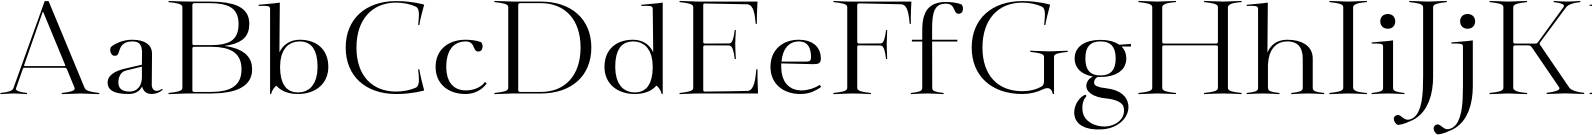 Deleplace Regular Font